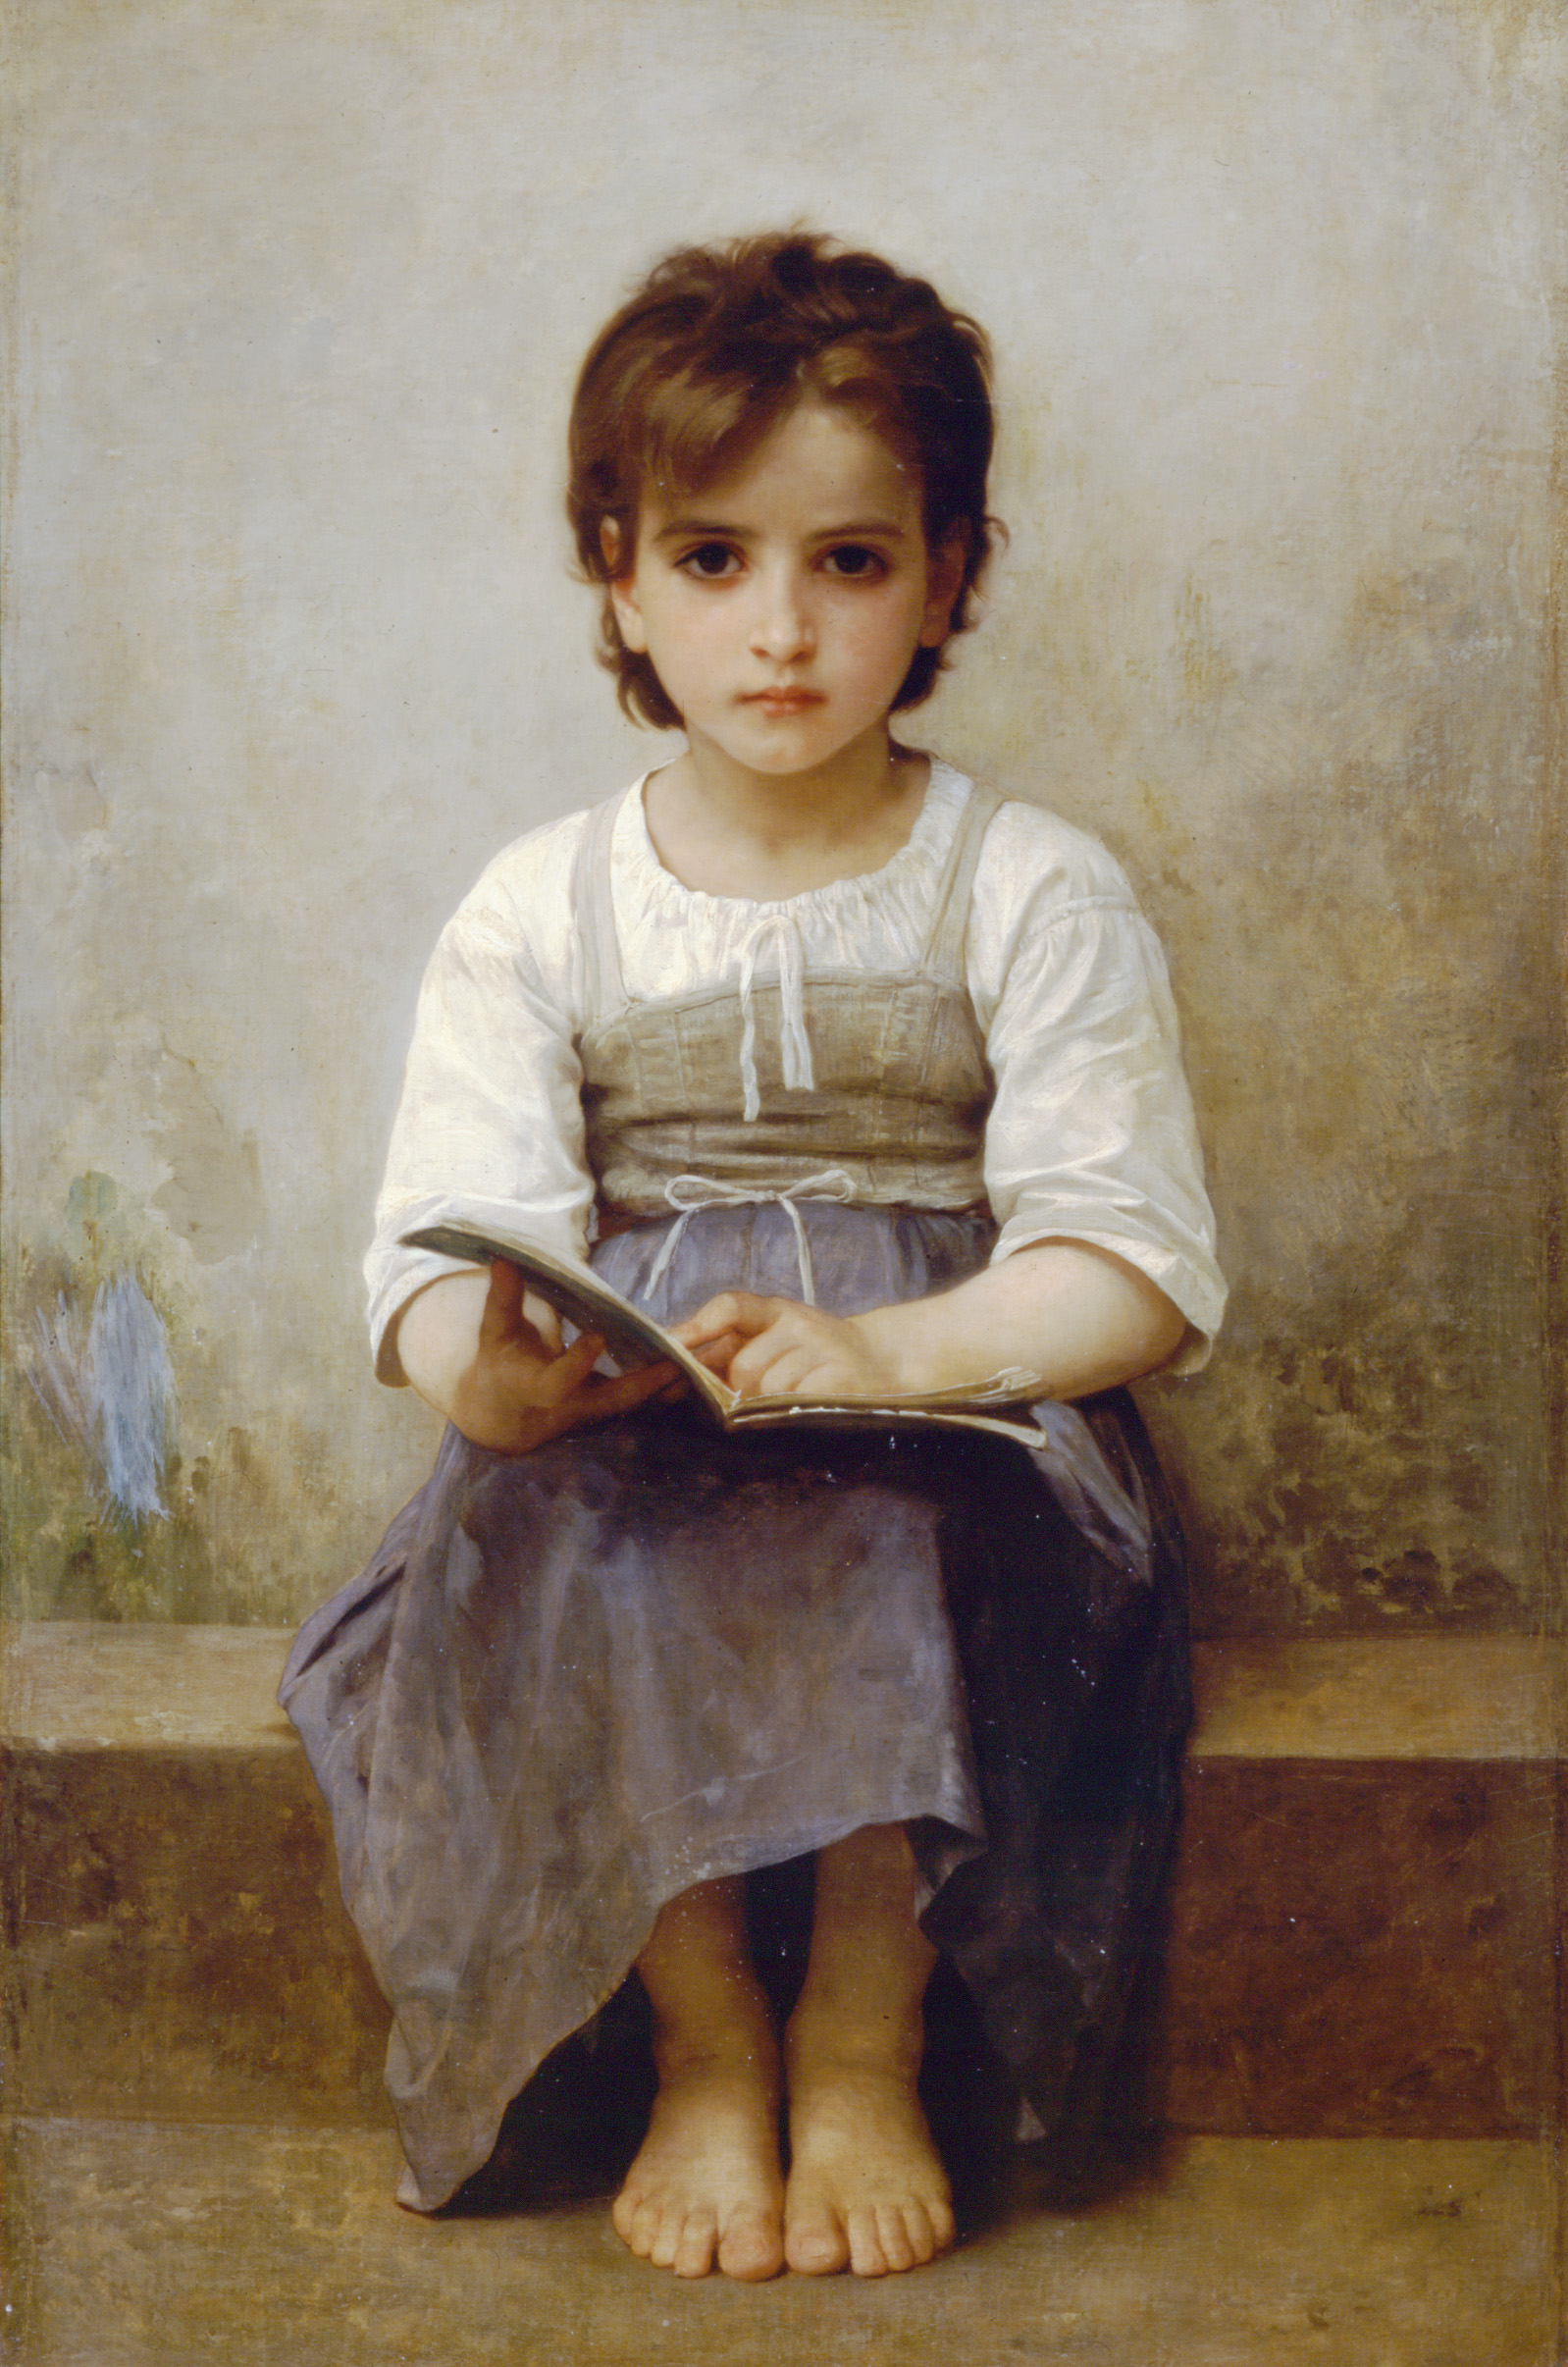 La Leçon Difficile by William-Adolphe Bouguereau, 1884